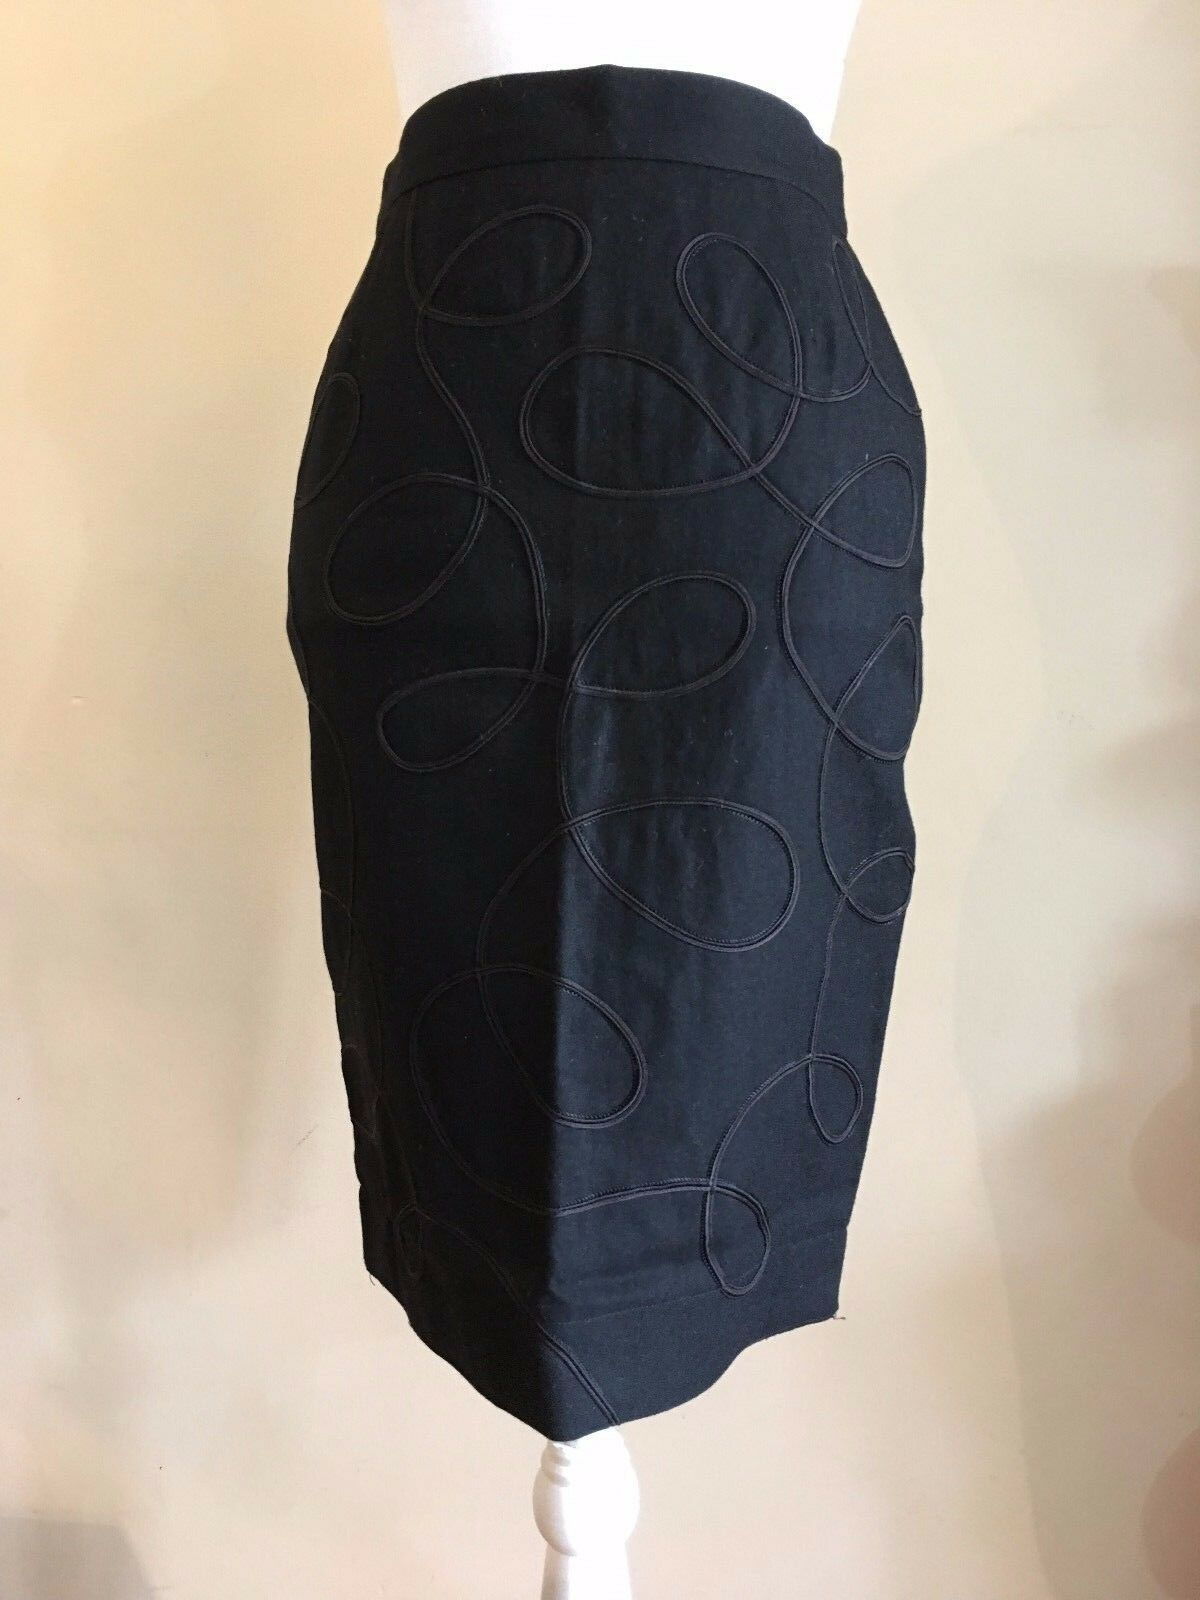 FONTANA MILANO COUTURE BY VENEZIANO 100% WOOL EMBELLISHED PENCIL SKIRT38ITALY